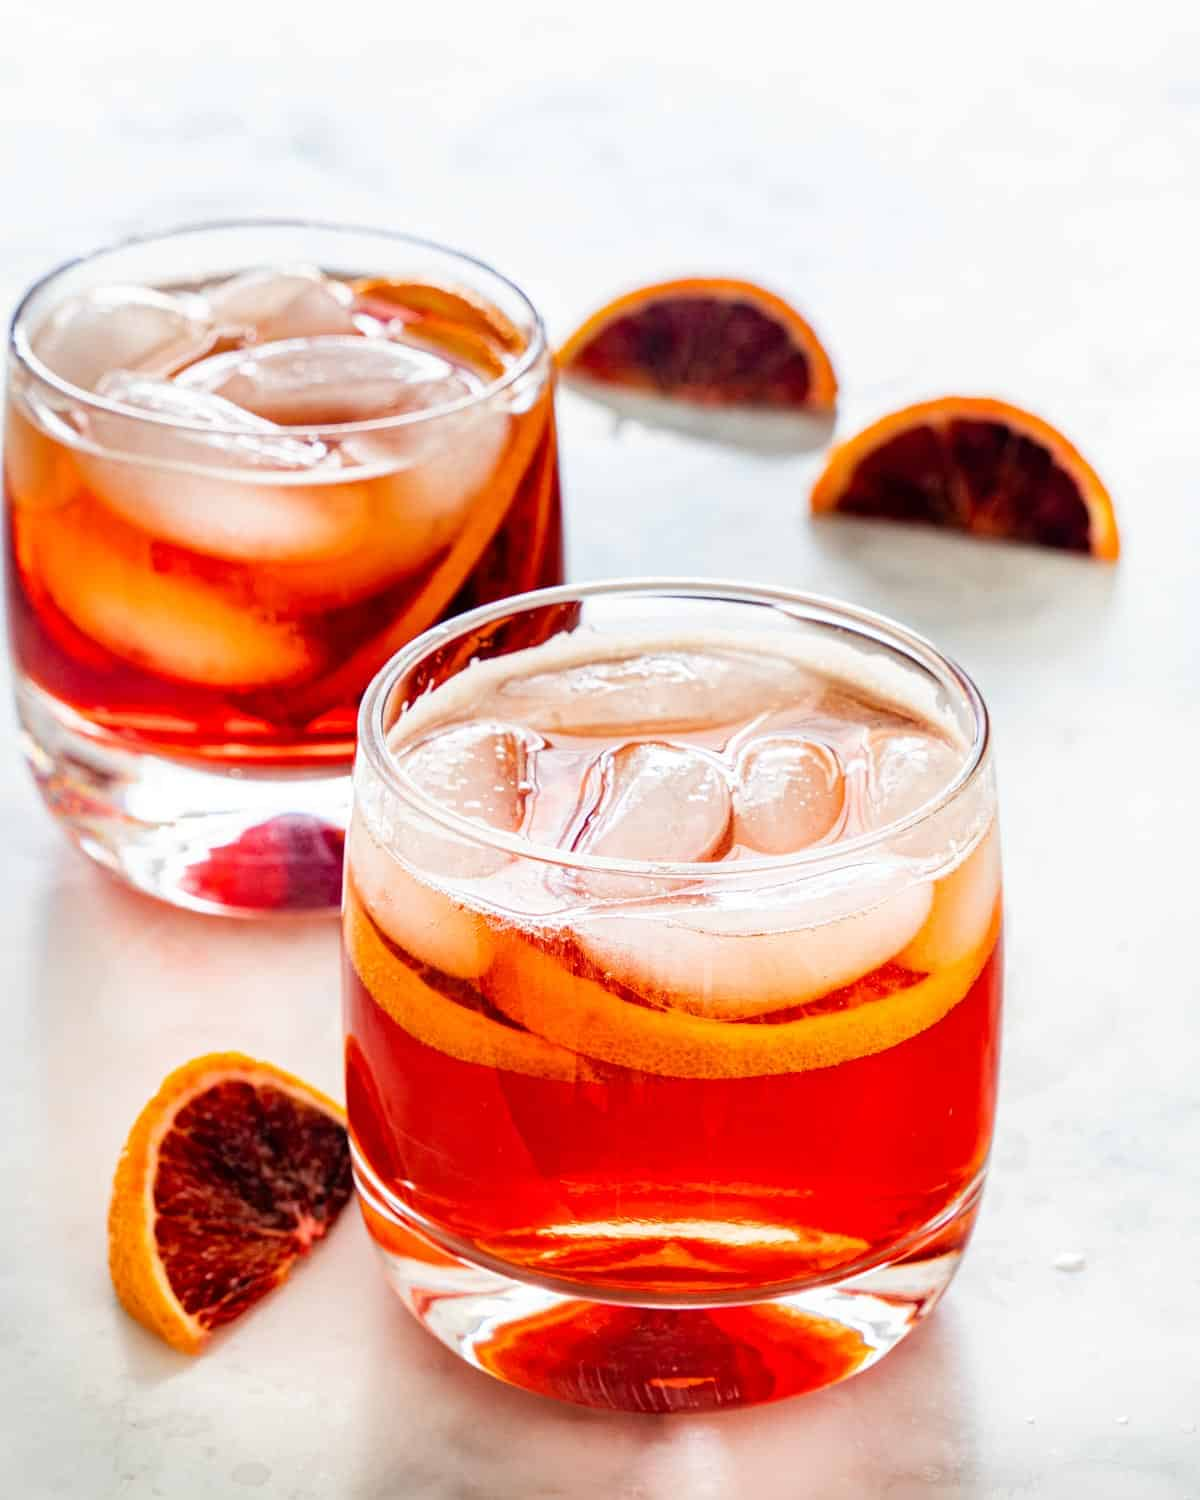 americano cocktail in two glasses garnished with blood orange